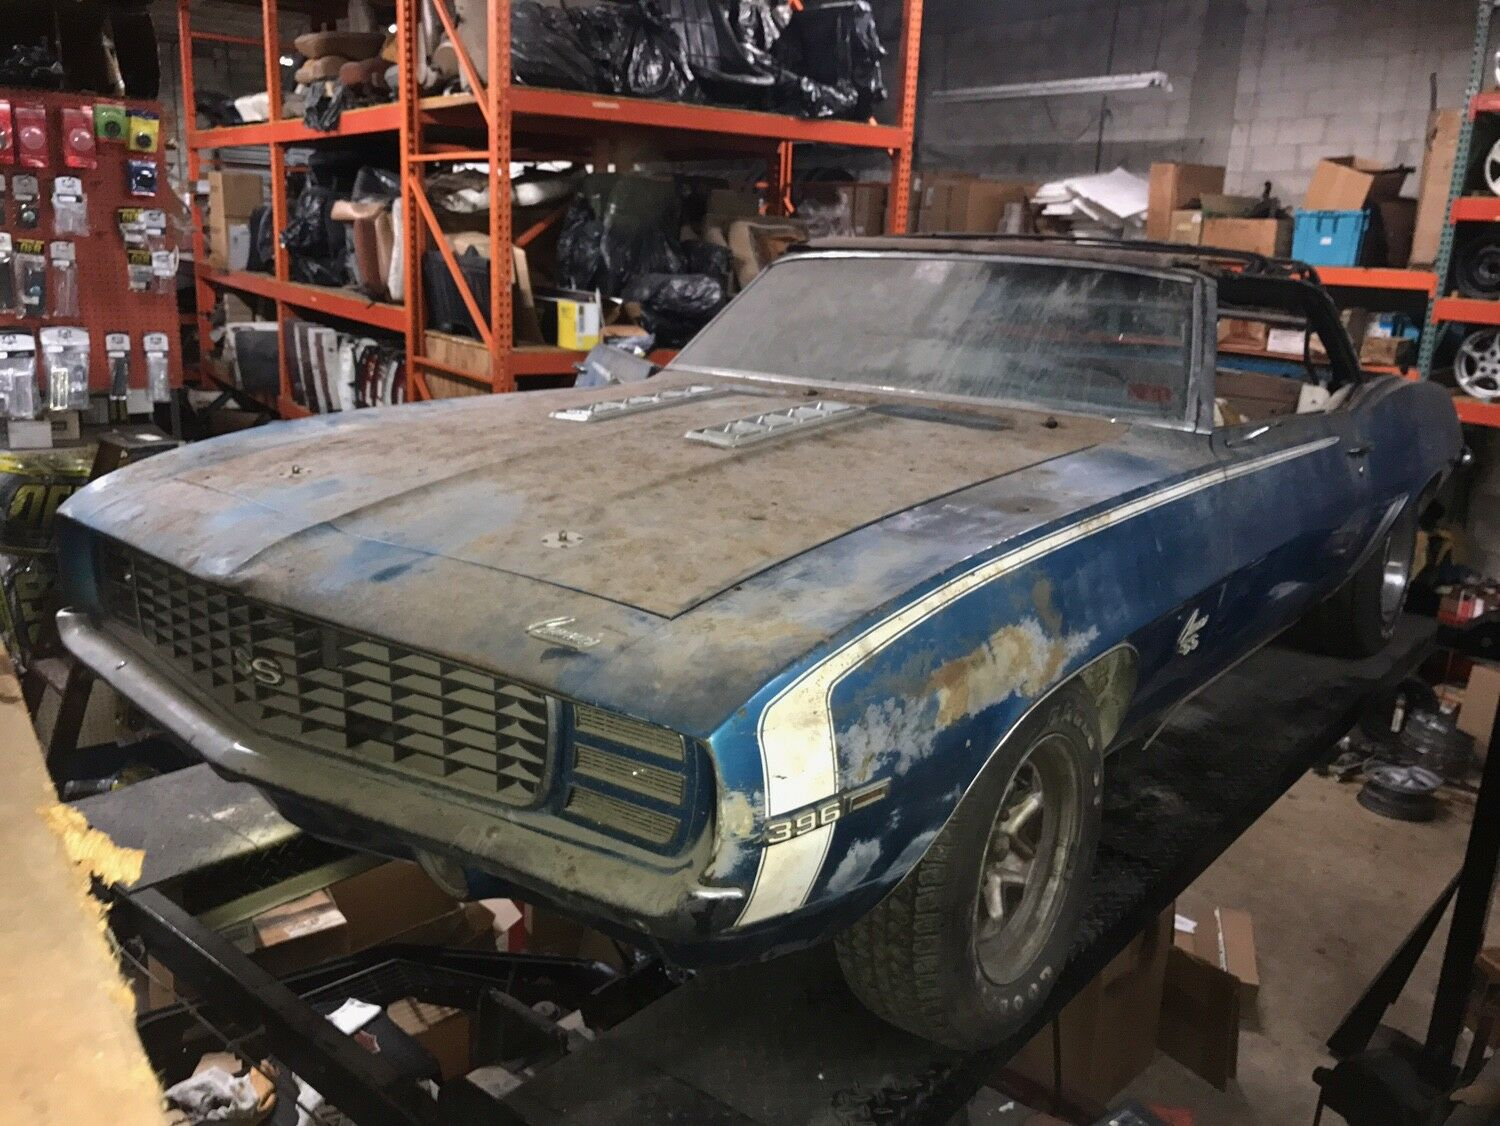 1969 camaro ss 396 convertible 4 speed w rs option project car used chevrolet camaro for sale. Black Bedroom Furniture Sets. Home Design Ideas